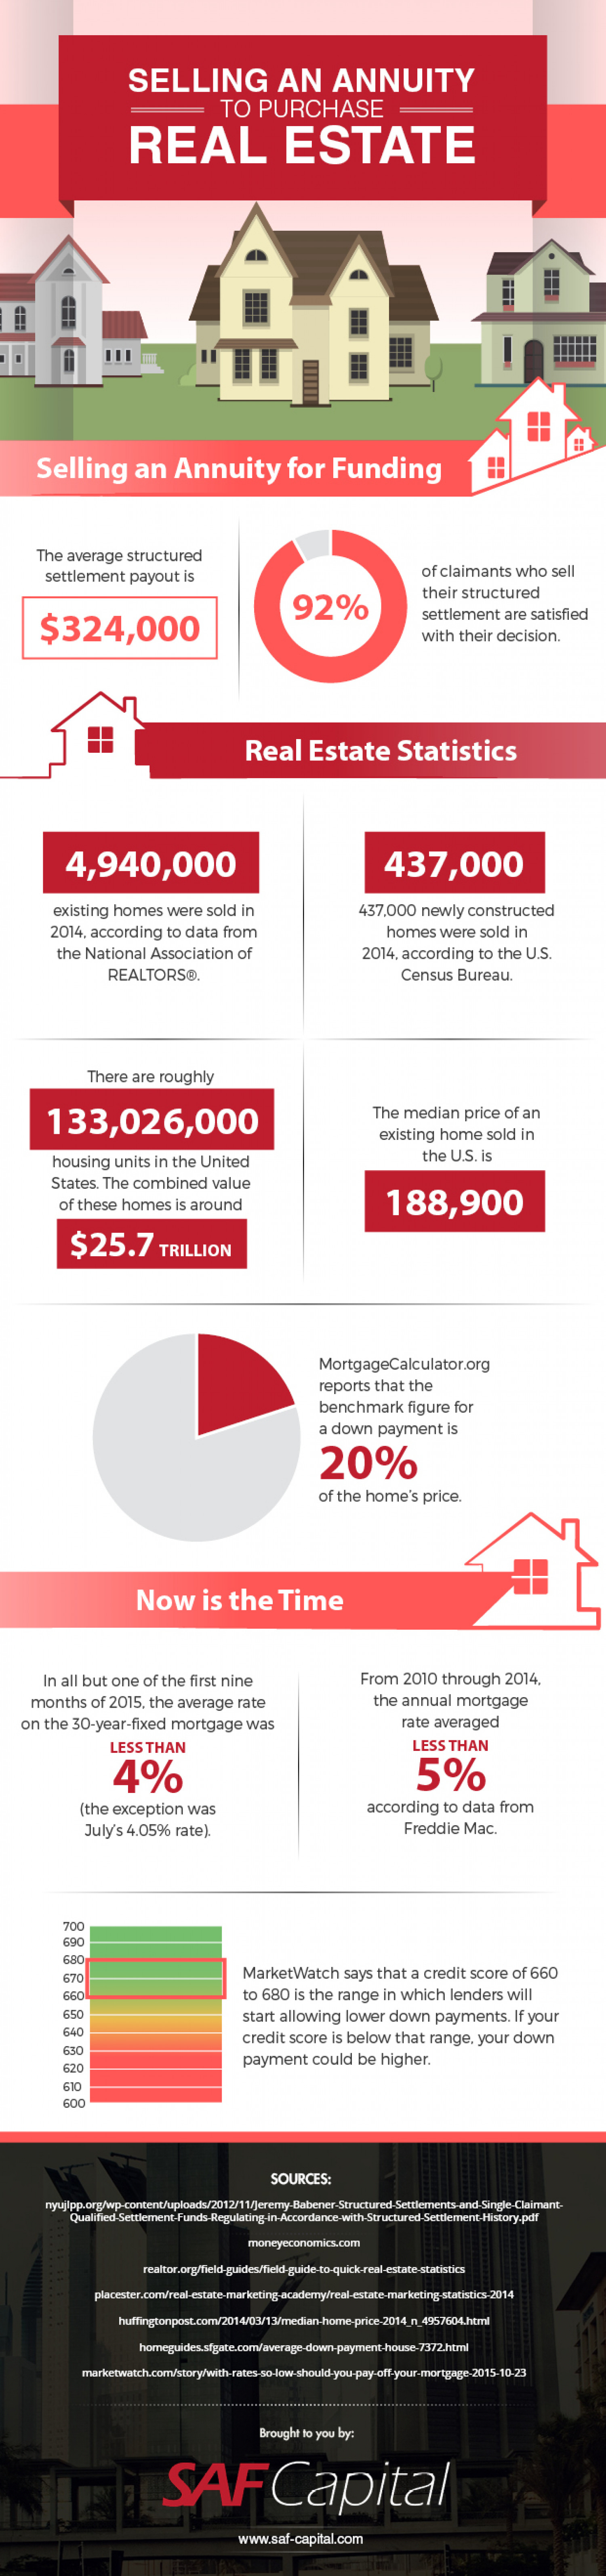 Selling An Annuity To Purchase Real Estate Infographic